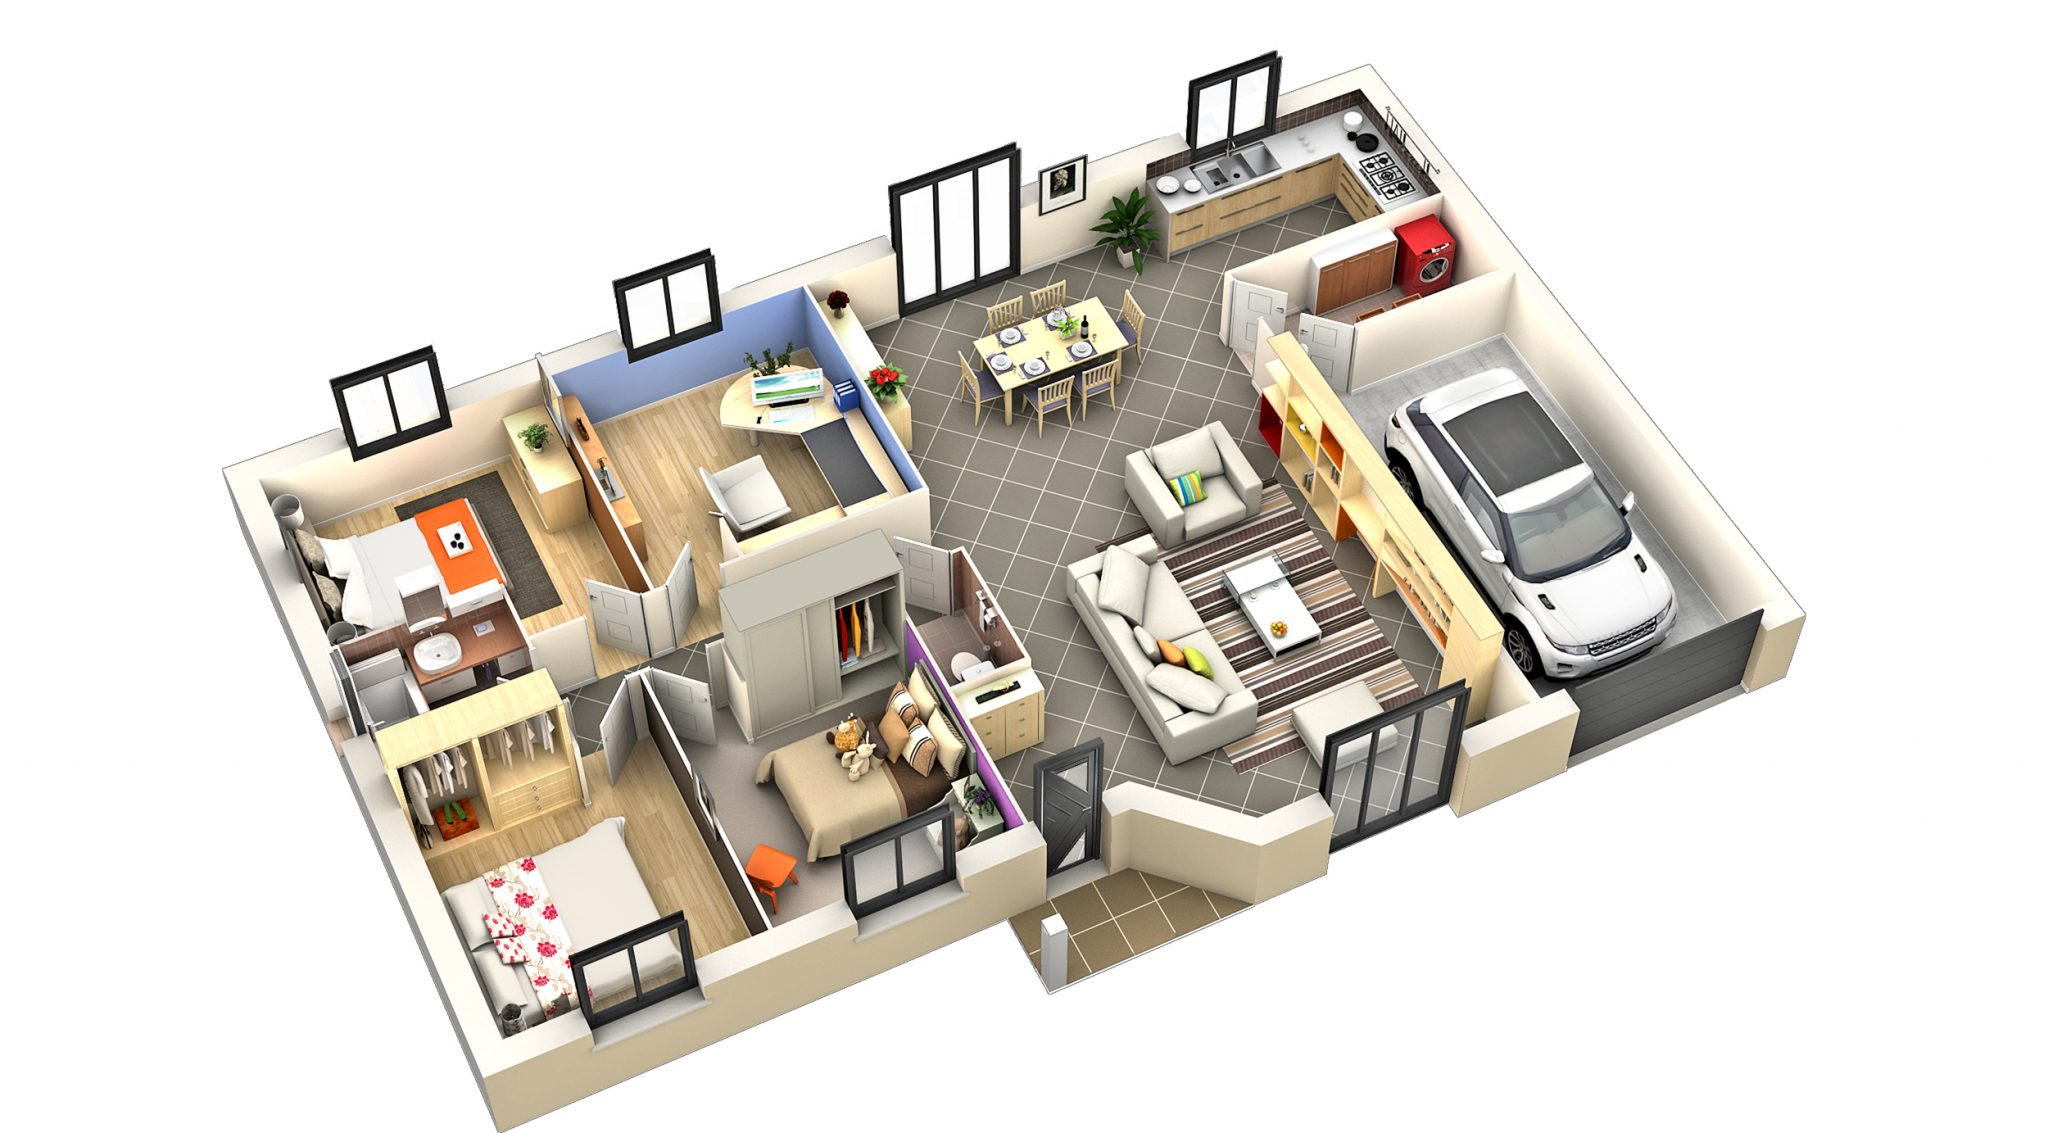 Plan interieur maison plain pied l 39 impression 3d for Interieur maison 3d